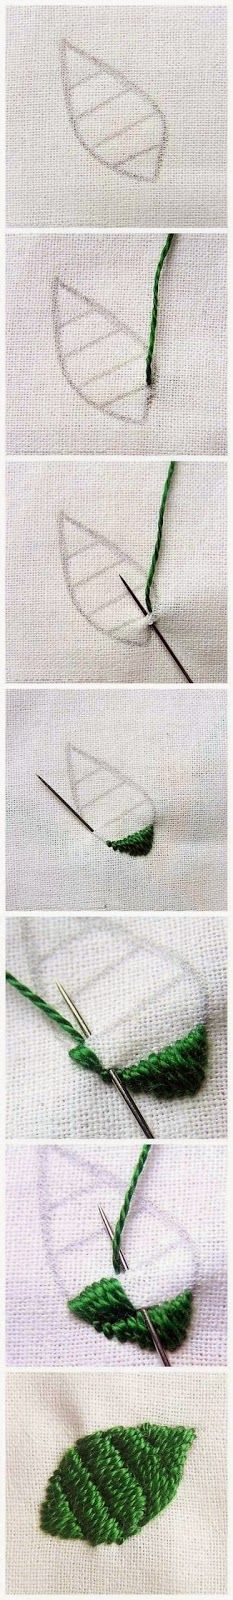 Embroidery Statin Stitch Leaf filled with rows of Satin Stitch - no name has been given for this stitch and I have not been able to find the original source. Do you know what it is called? Ribbon Embroidery, Beaded Embroidery, Cross Stitch Embroidery, Embroidery Patterns, Quilt Stitching, Cross Stitching, Fabric Crafts, Sewing Crafts, Diy Broderie